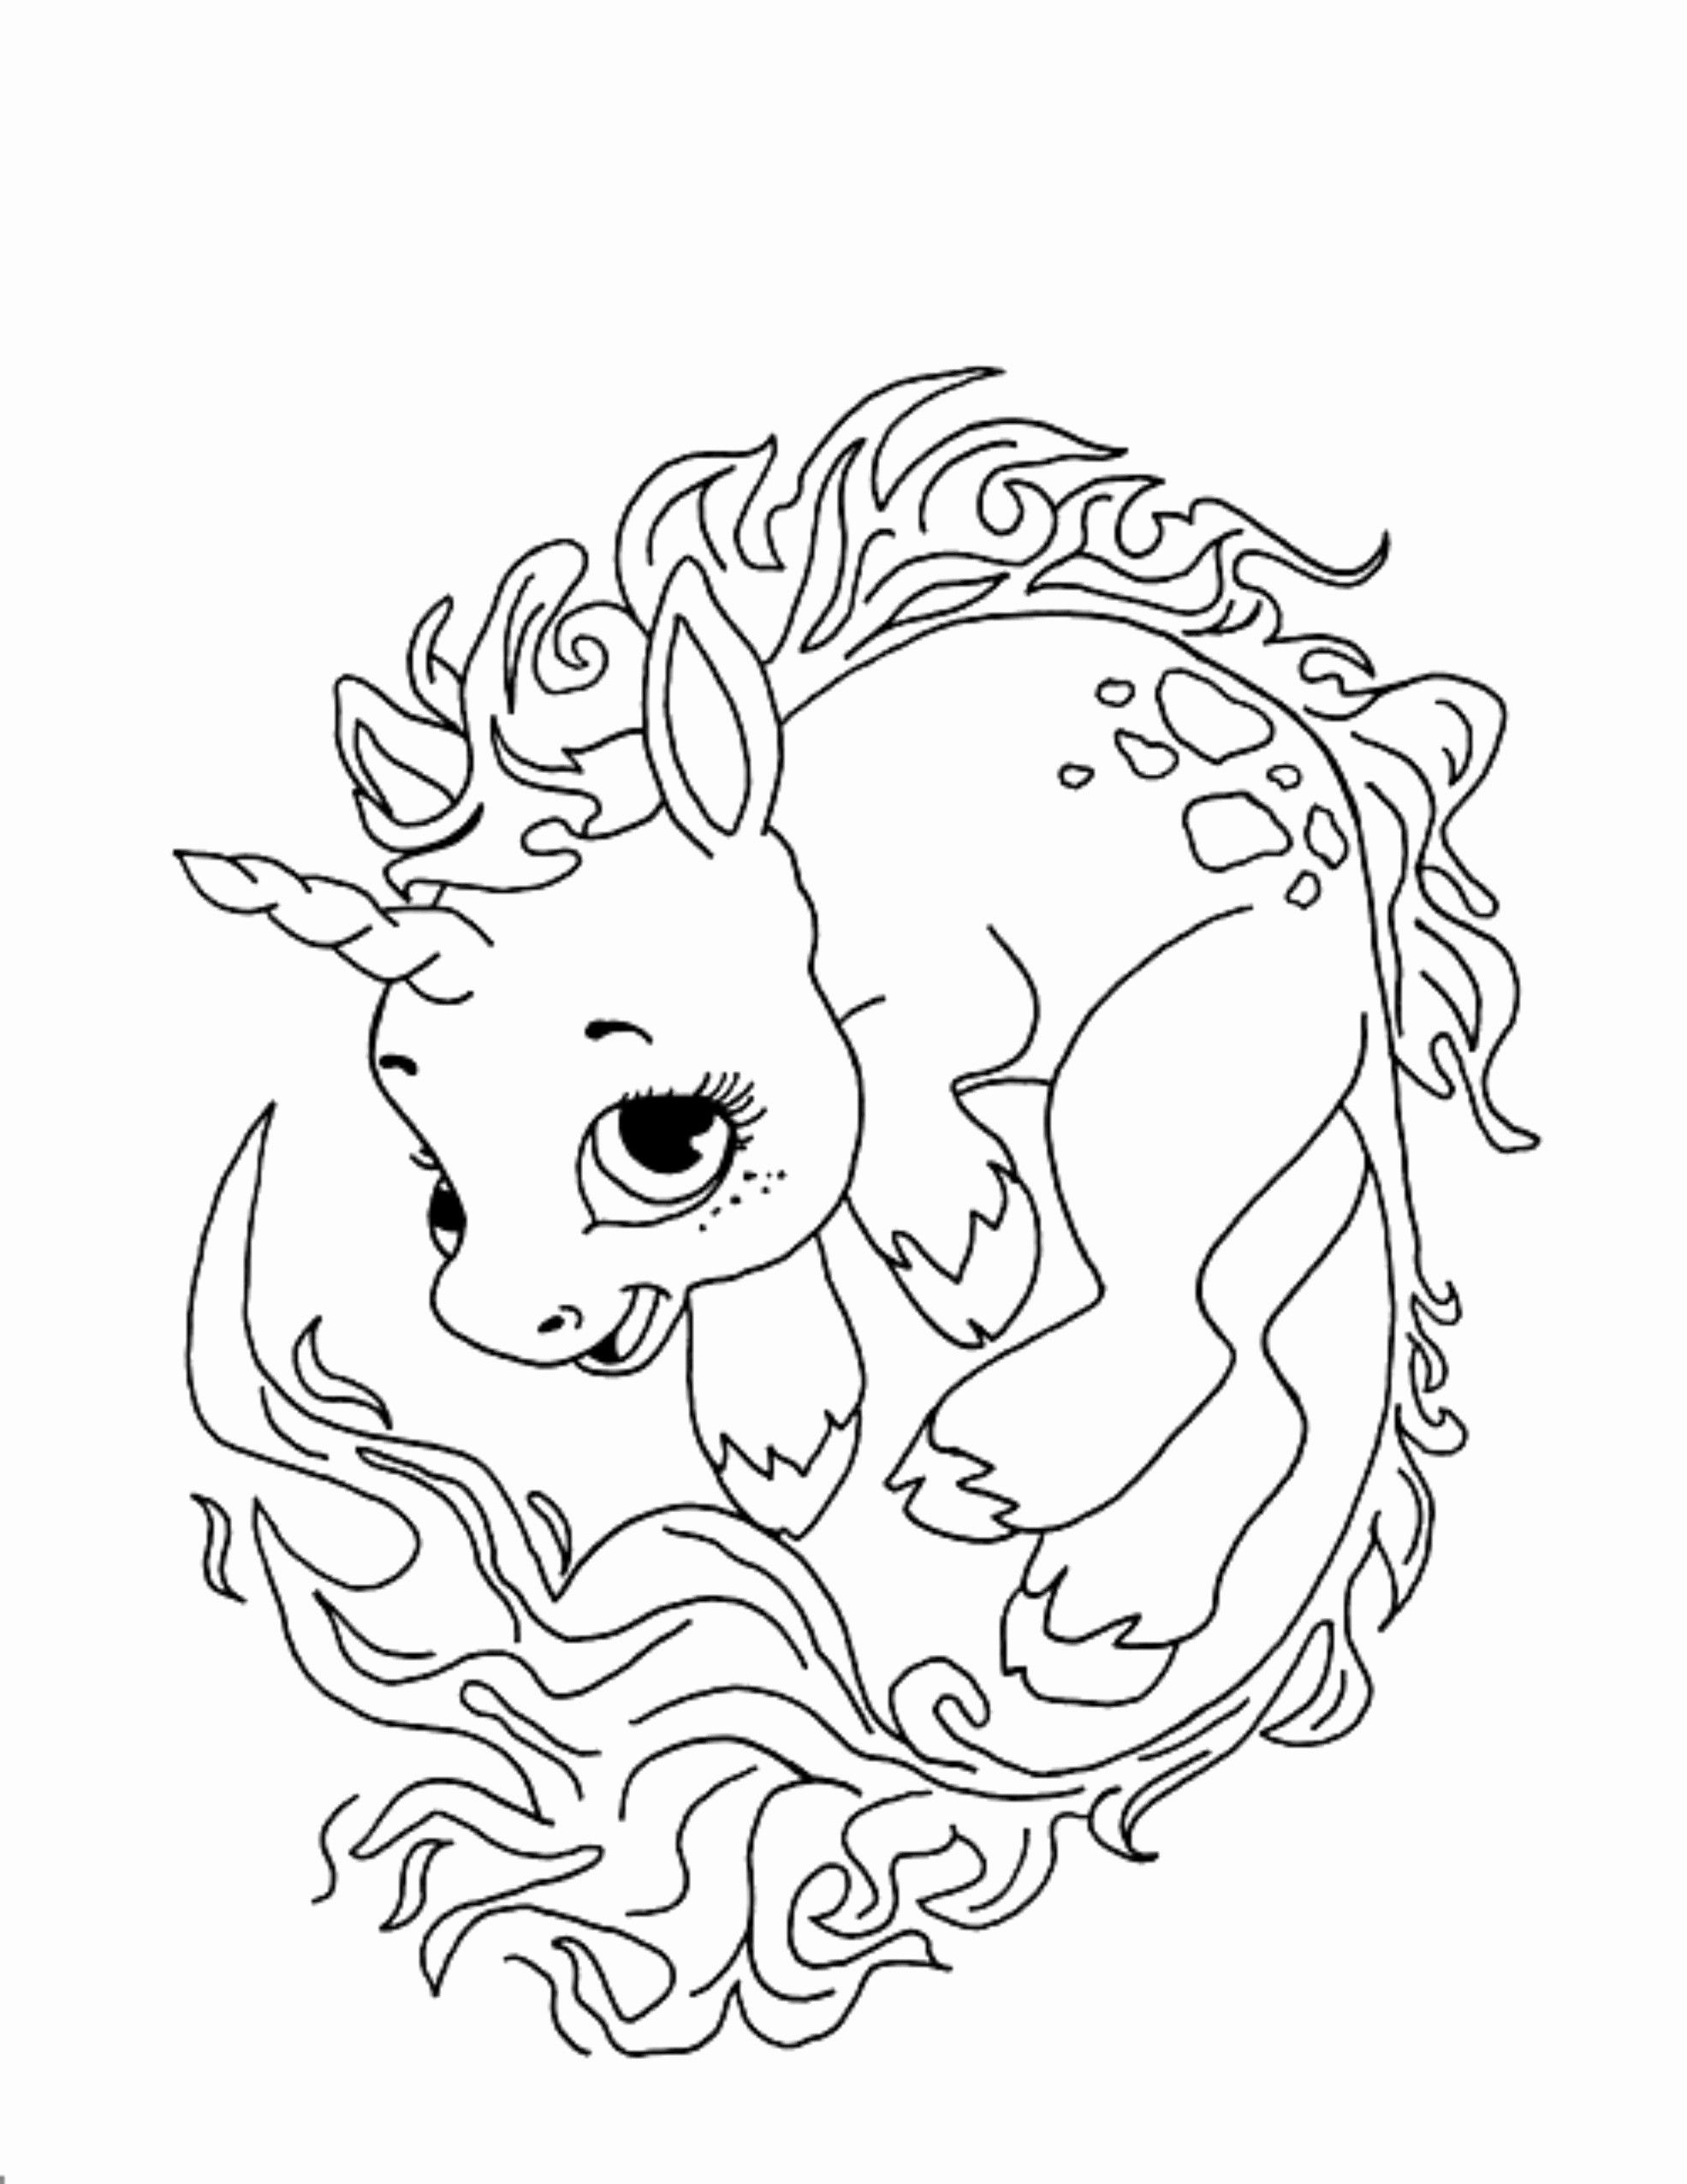 free coloring sheets unicorn unicorn coloring in page printable  free printable unicorn sheets free coloring